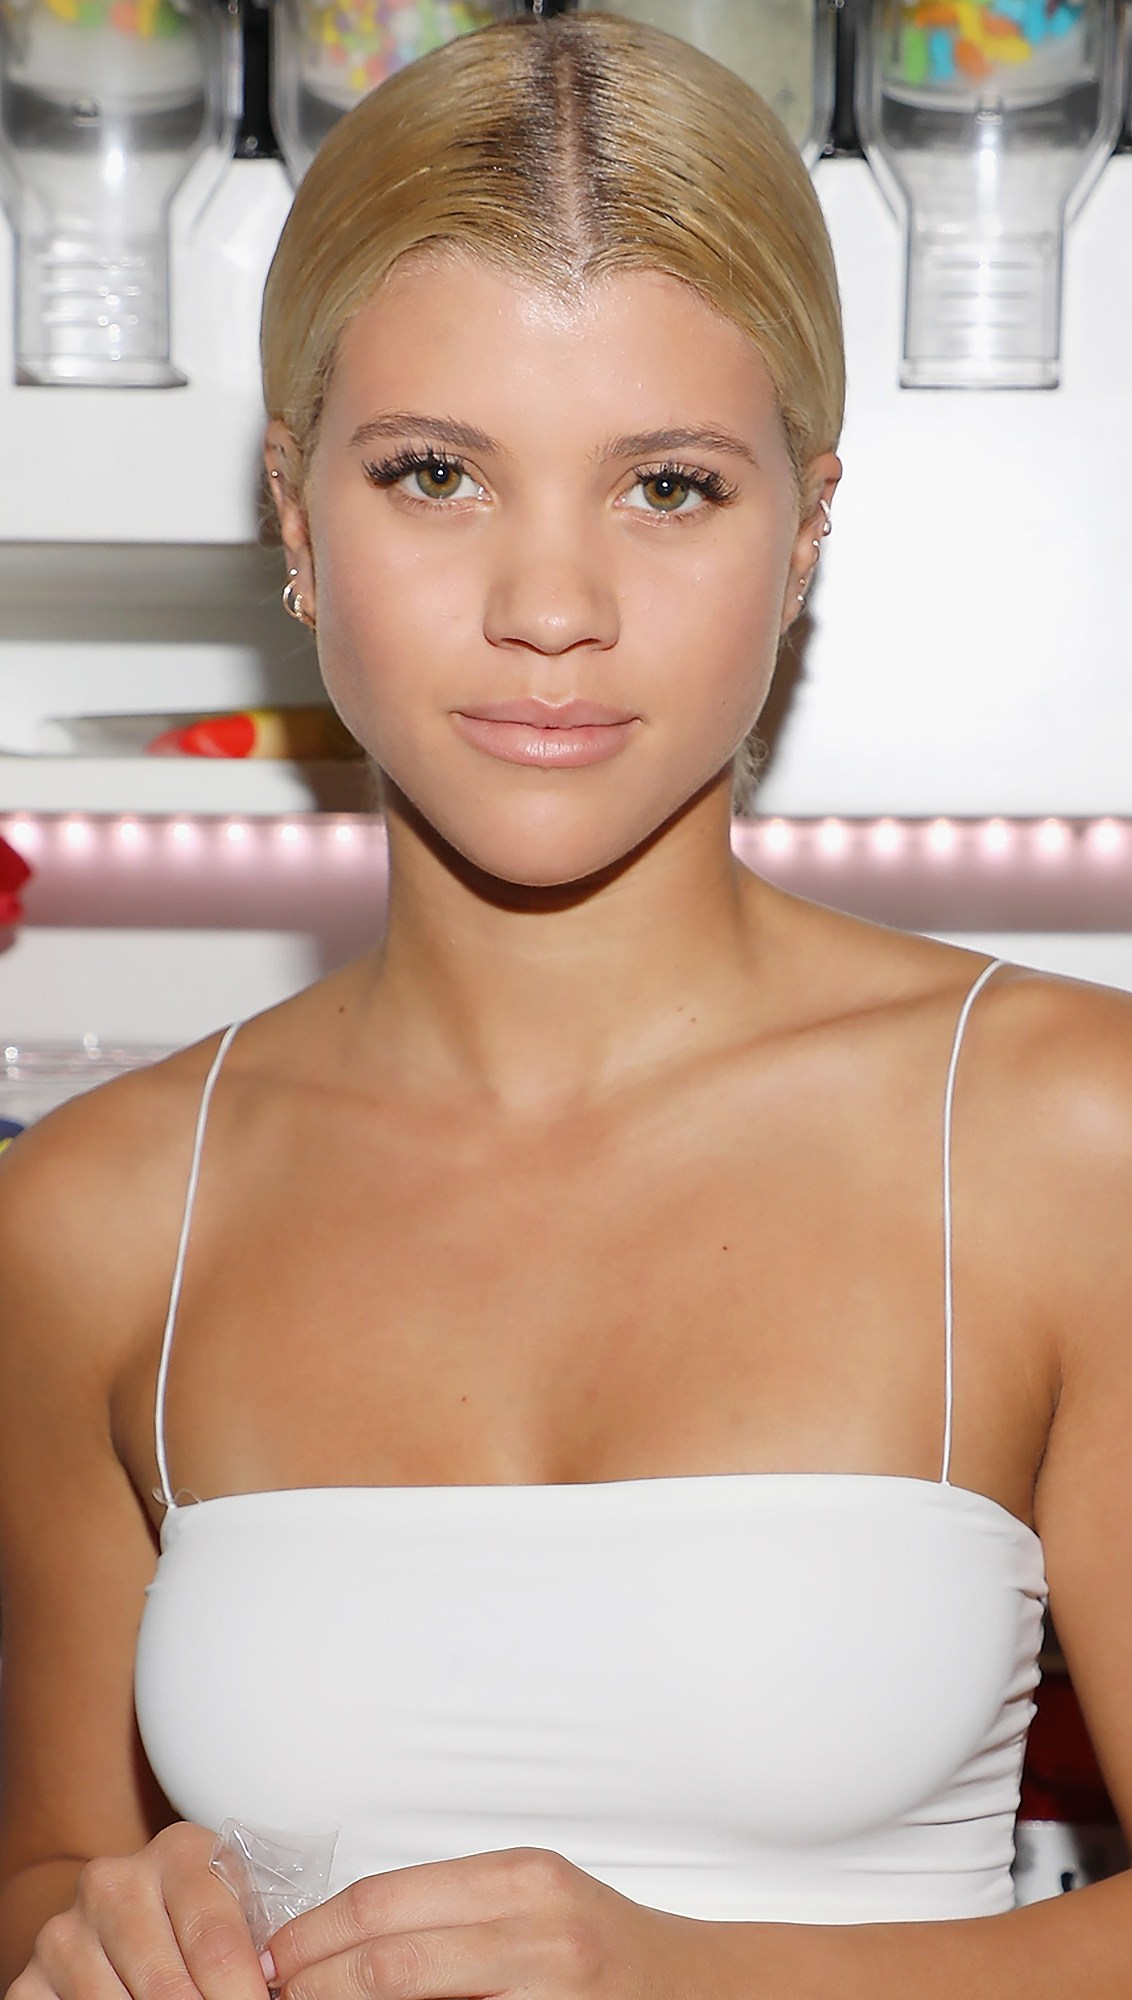 Sofia Richie, UsWeekly Celebrity Biography